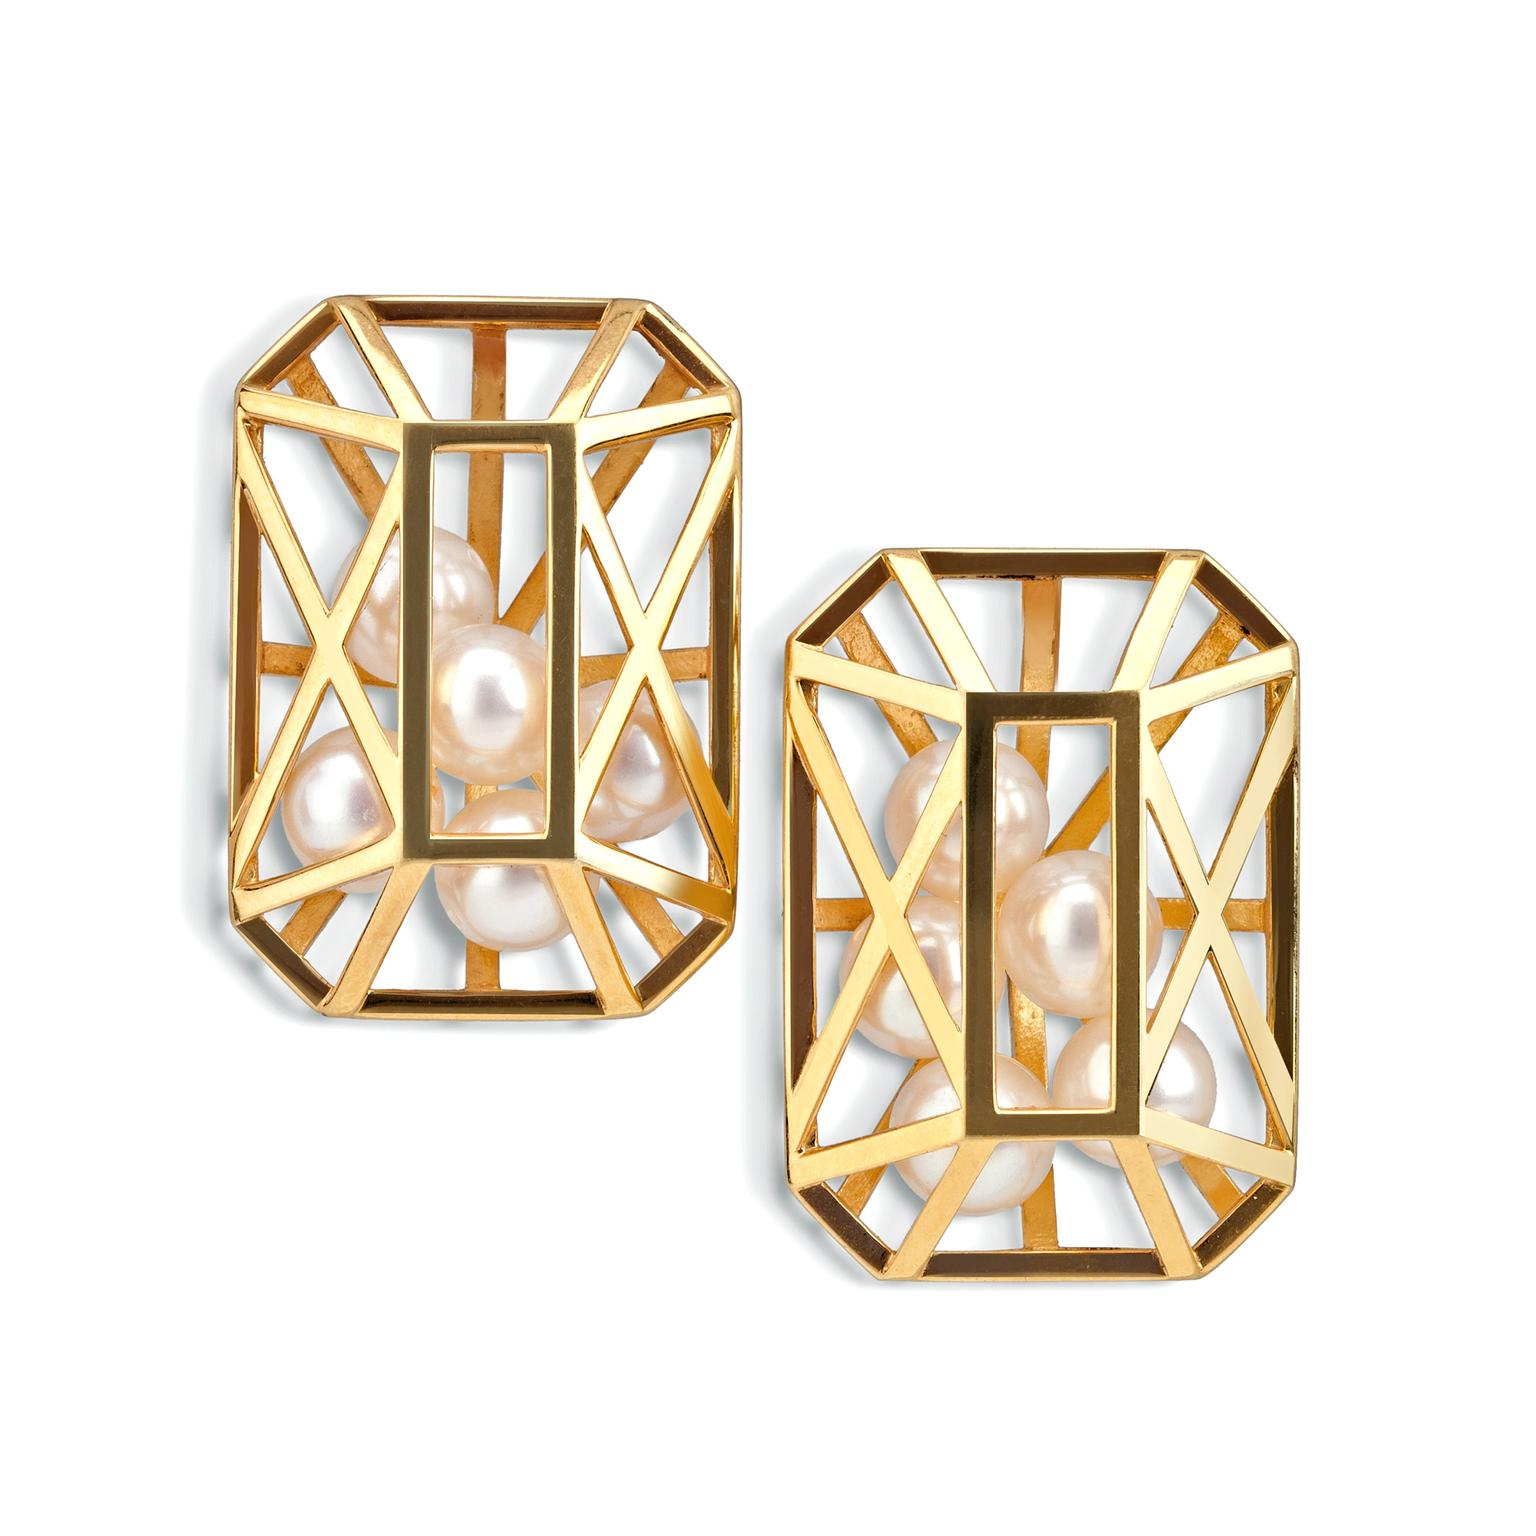 Melanie Georgacopoulos Caged collection pearl earrings